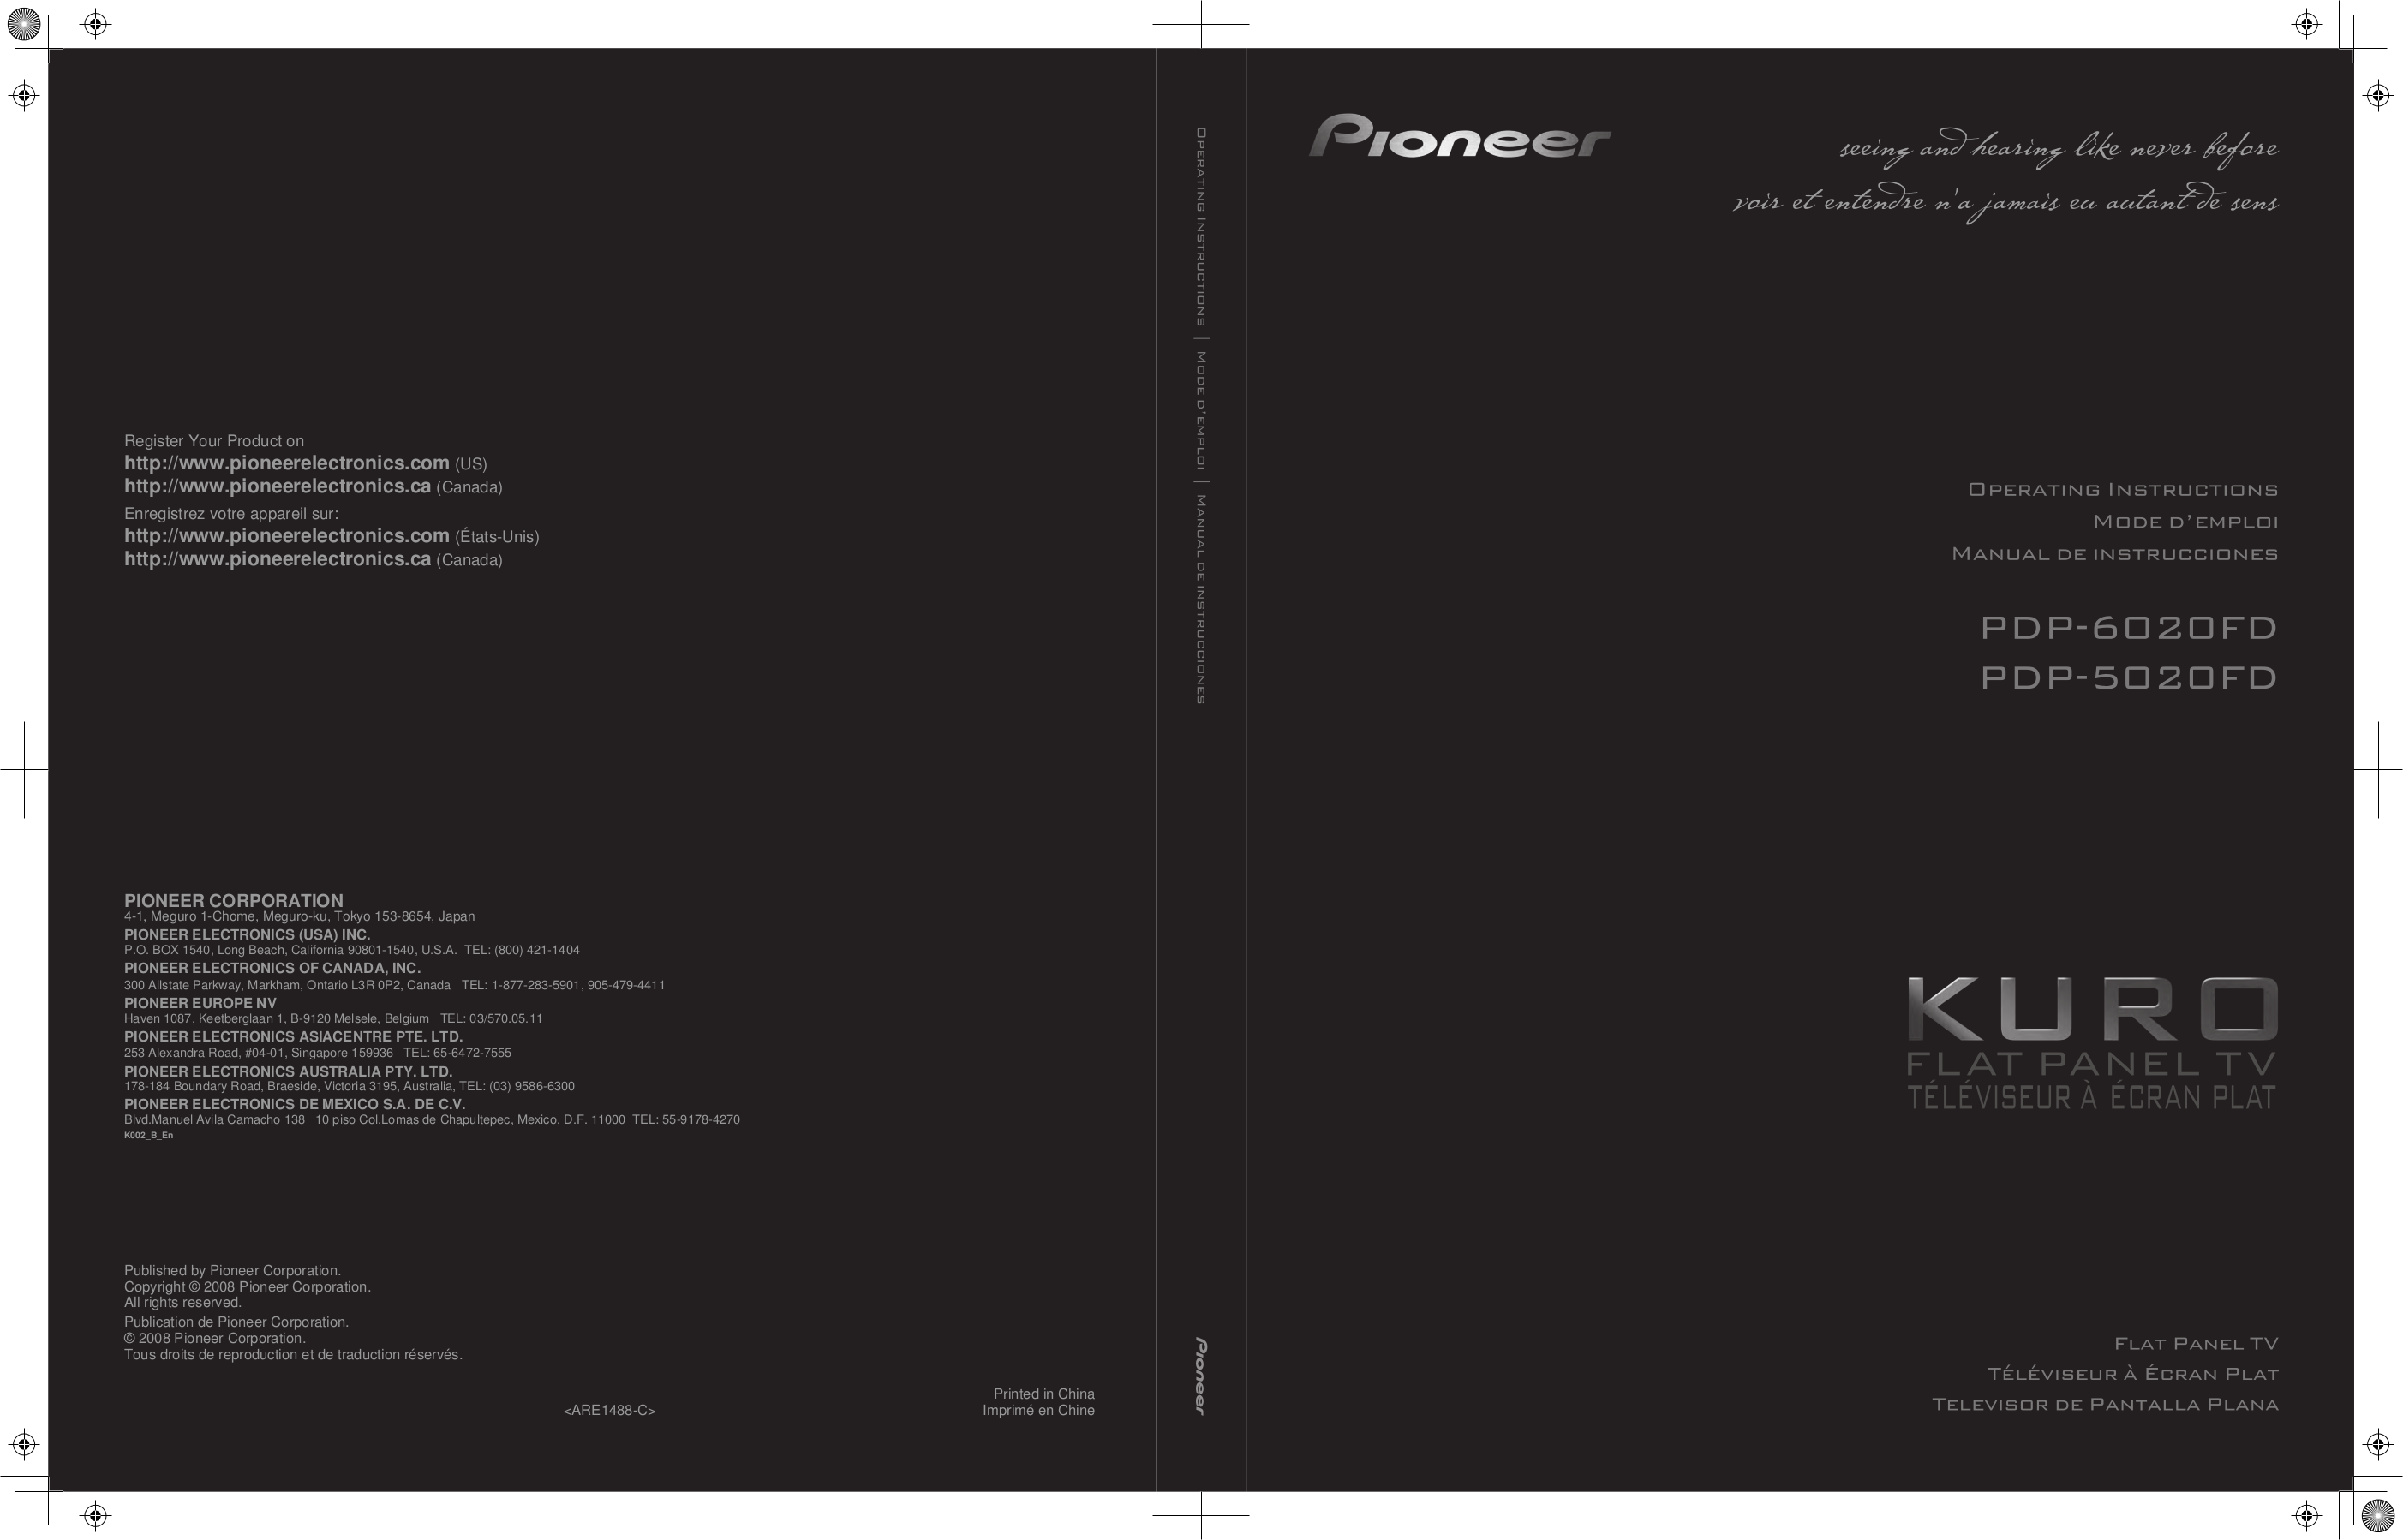 pdf for Rotel Washer RB-1080 manual